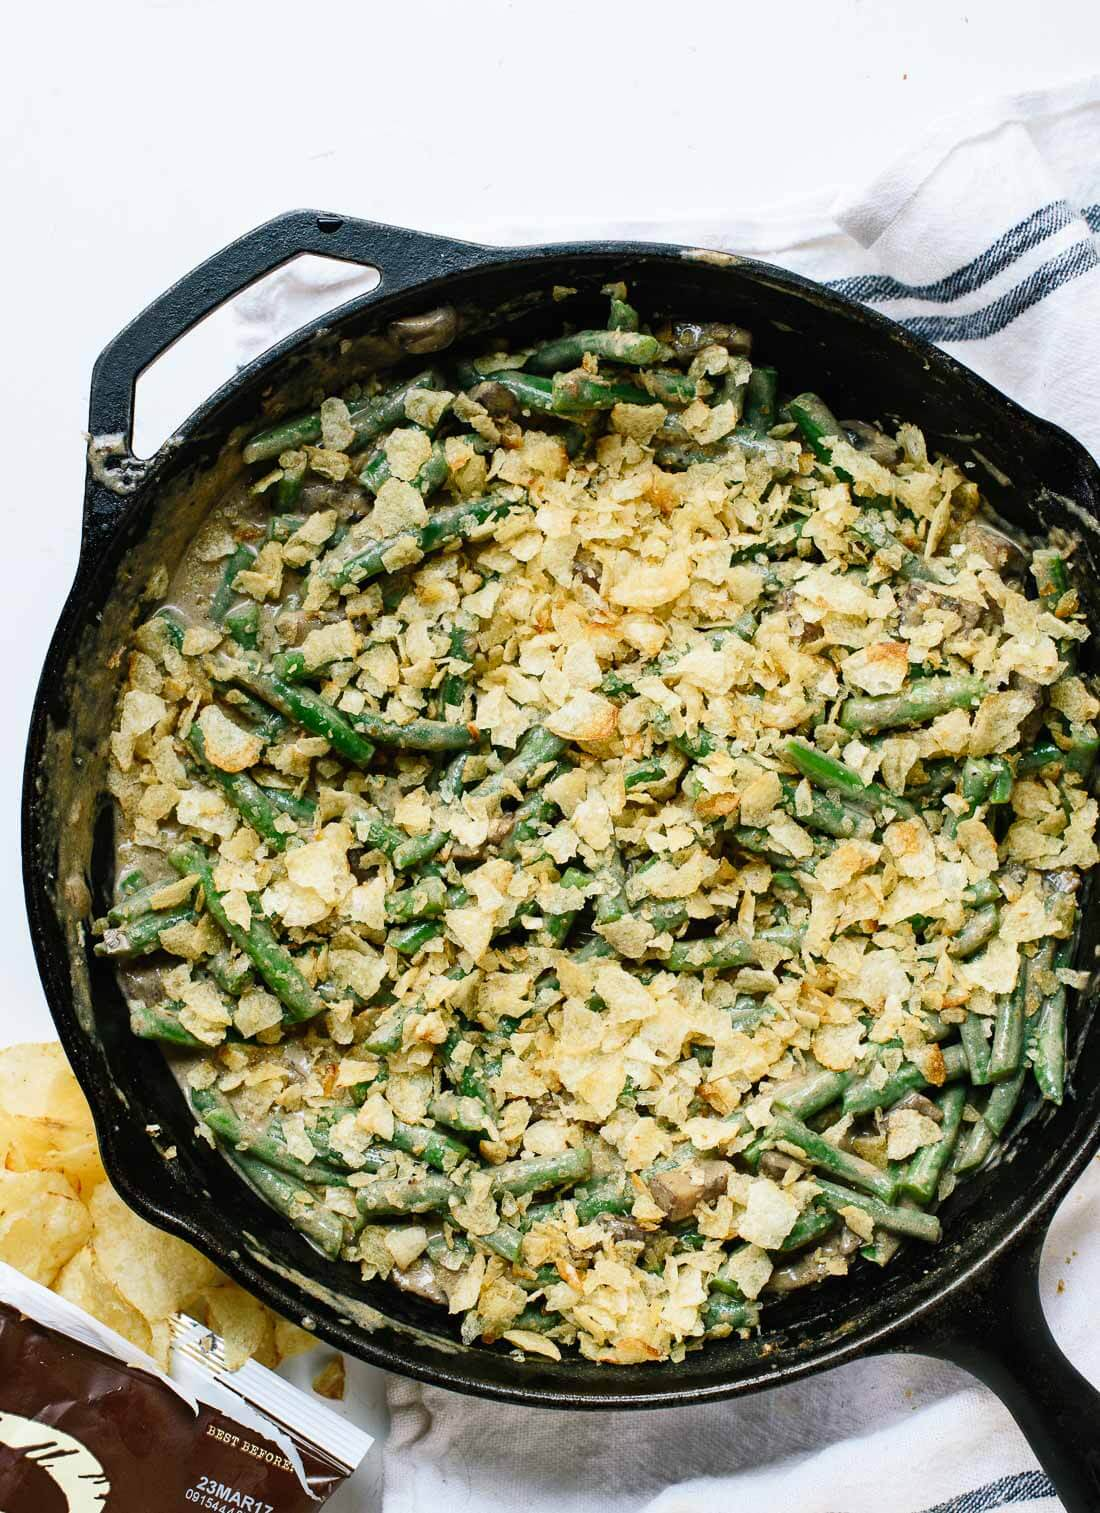 Delicious, lighter green bean casserole has one surprise ingredient—potato chips instead of fried onions! As such, it's gluten free. cookieandkate.com